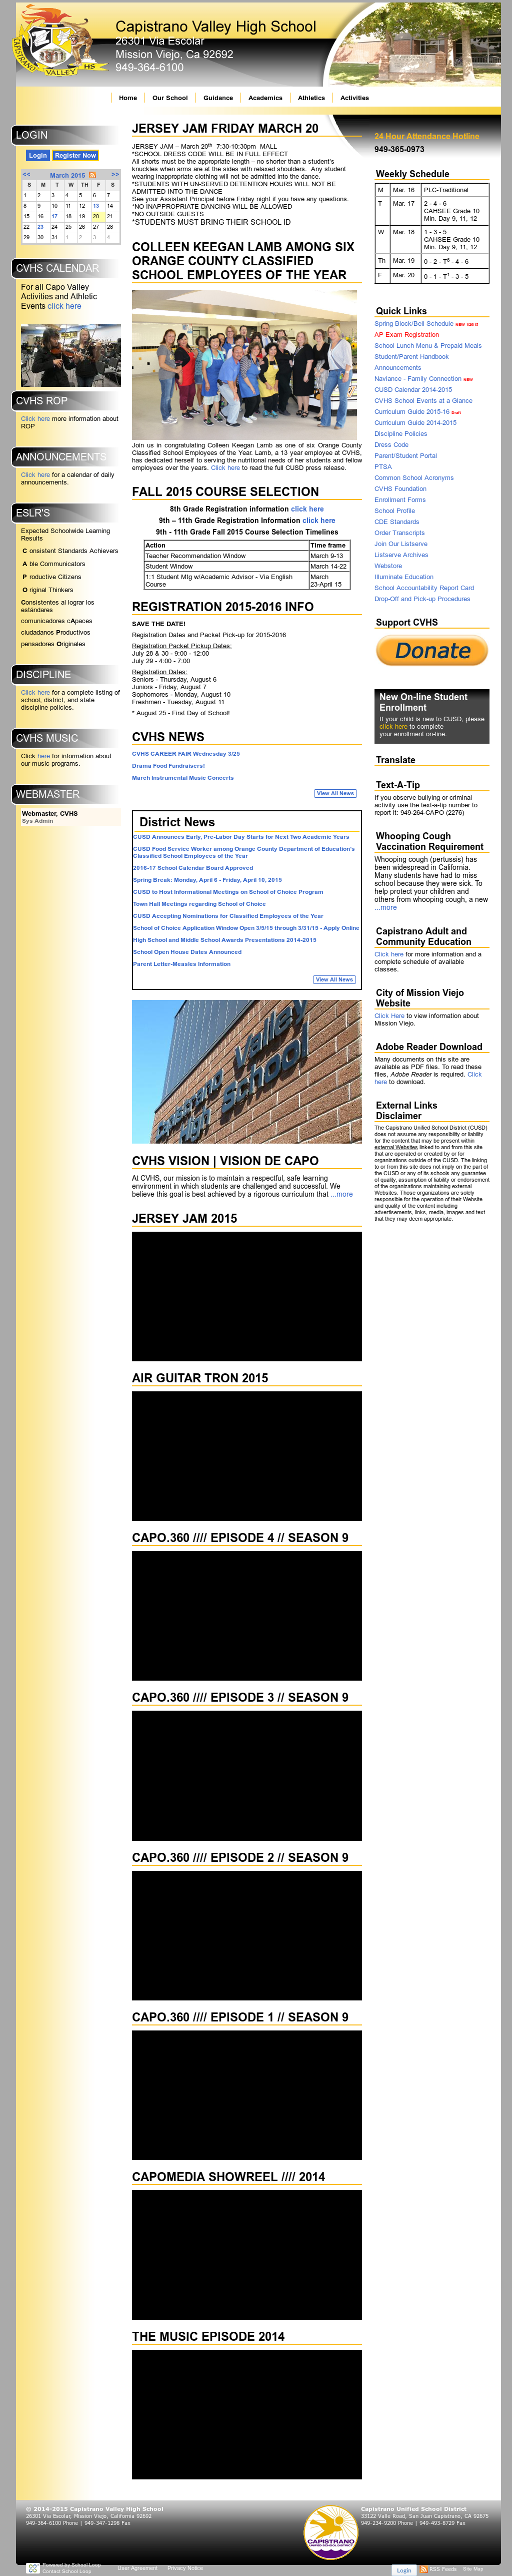 Cvhs Competitors, Revenue and Employees - Owler Company Profile